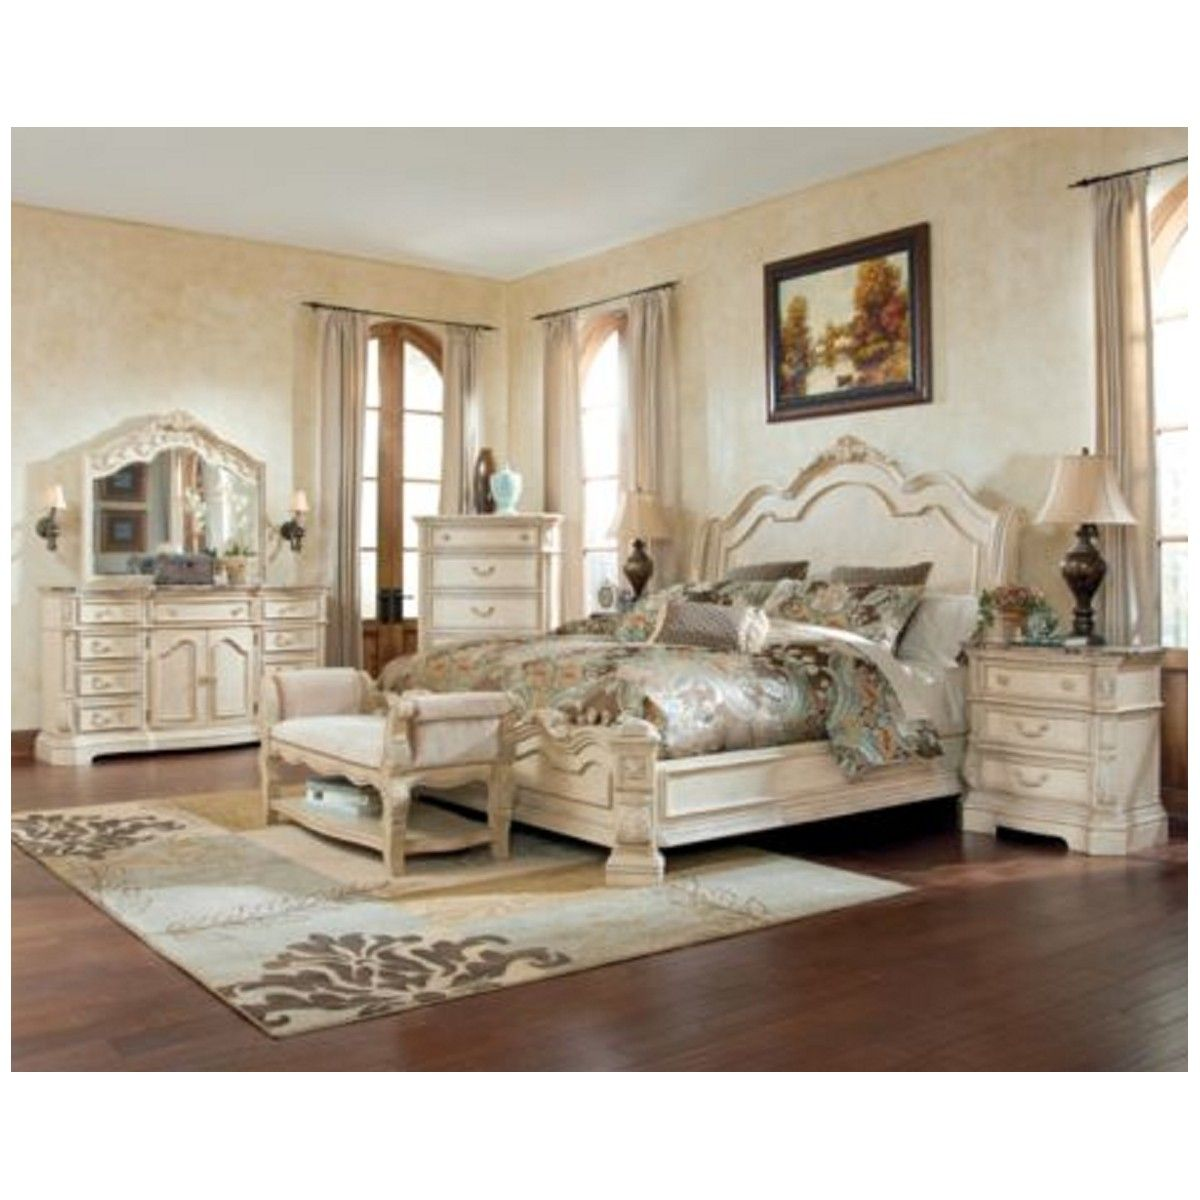 Ashley white bedroom furniture - Furniture White Ashley Furniture Bedroom Sets